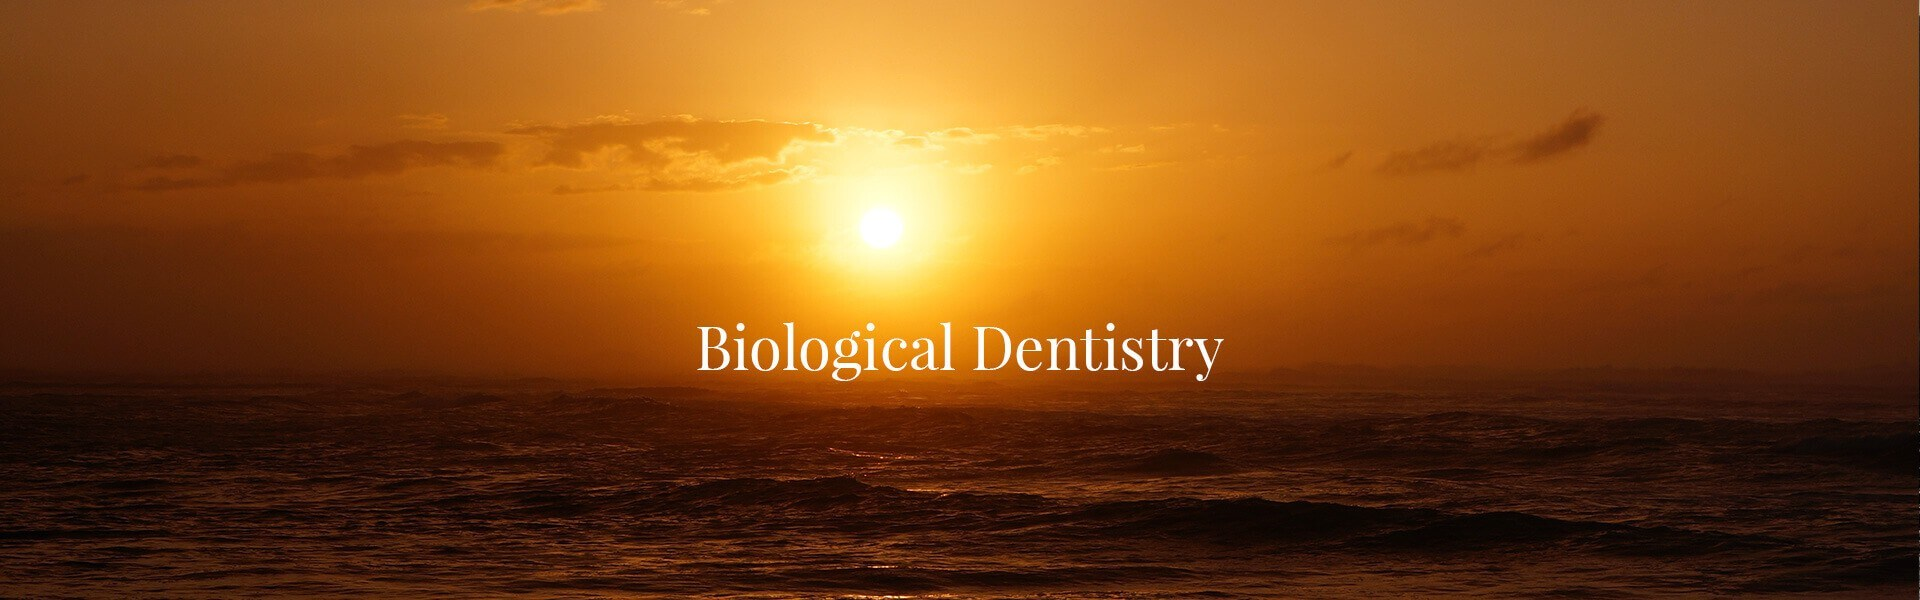 Biological Dentistry, Irvine